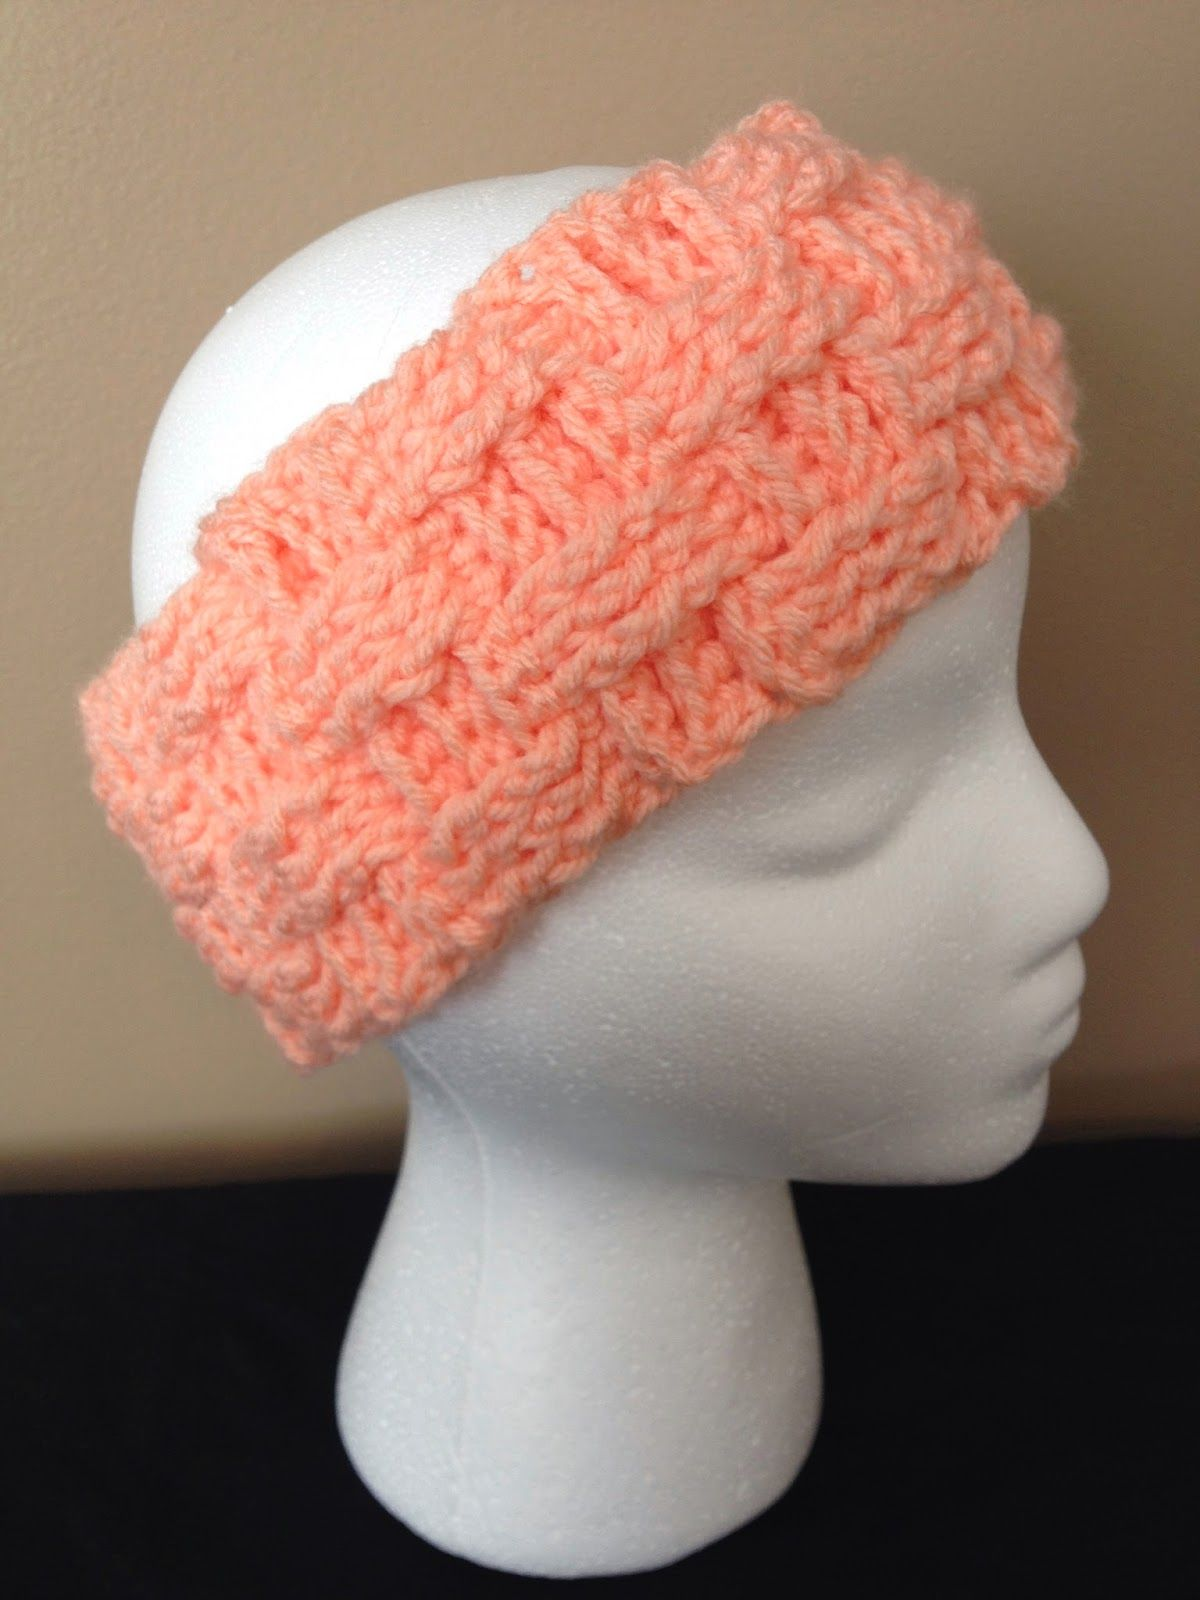 My crocheted world basket weave ear warmer free pattern my crocheted world basket weave ear warmer free pattern bankloansurffo Choice Image